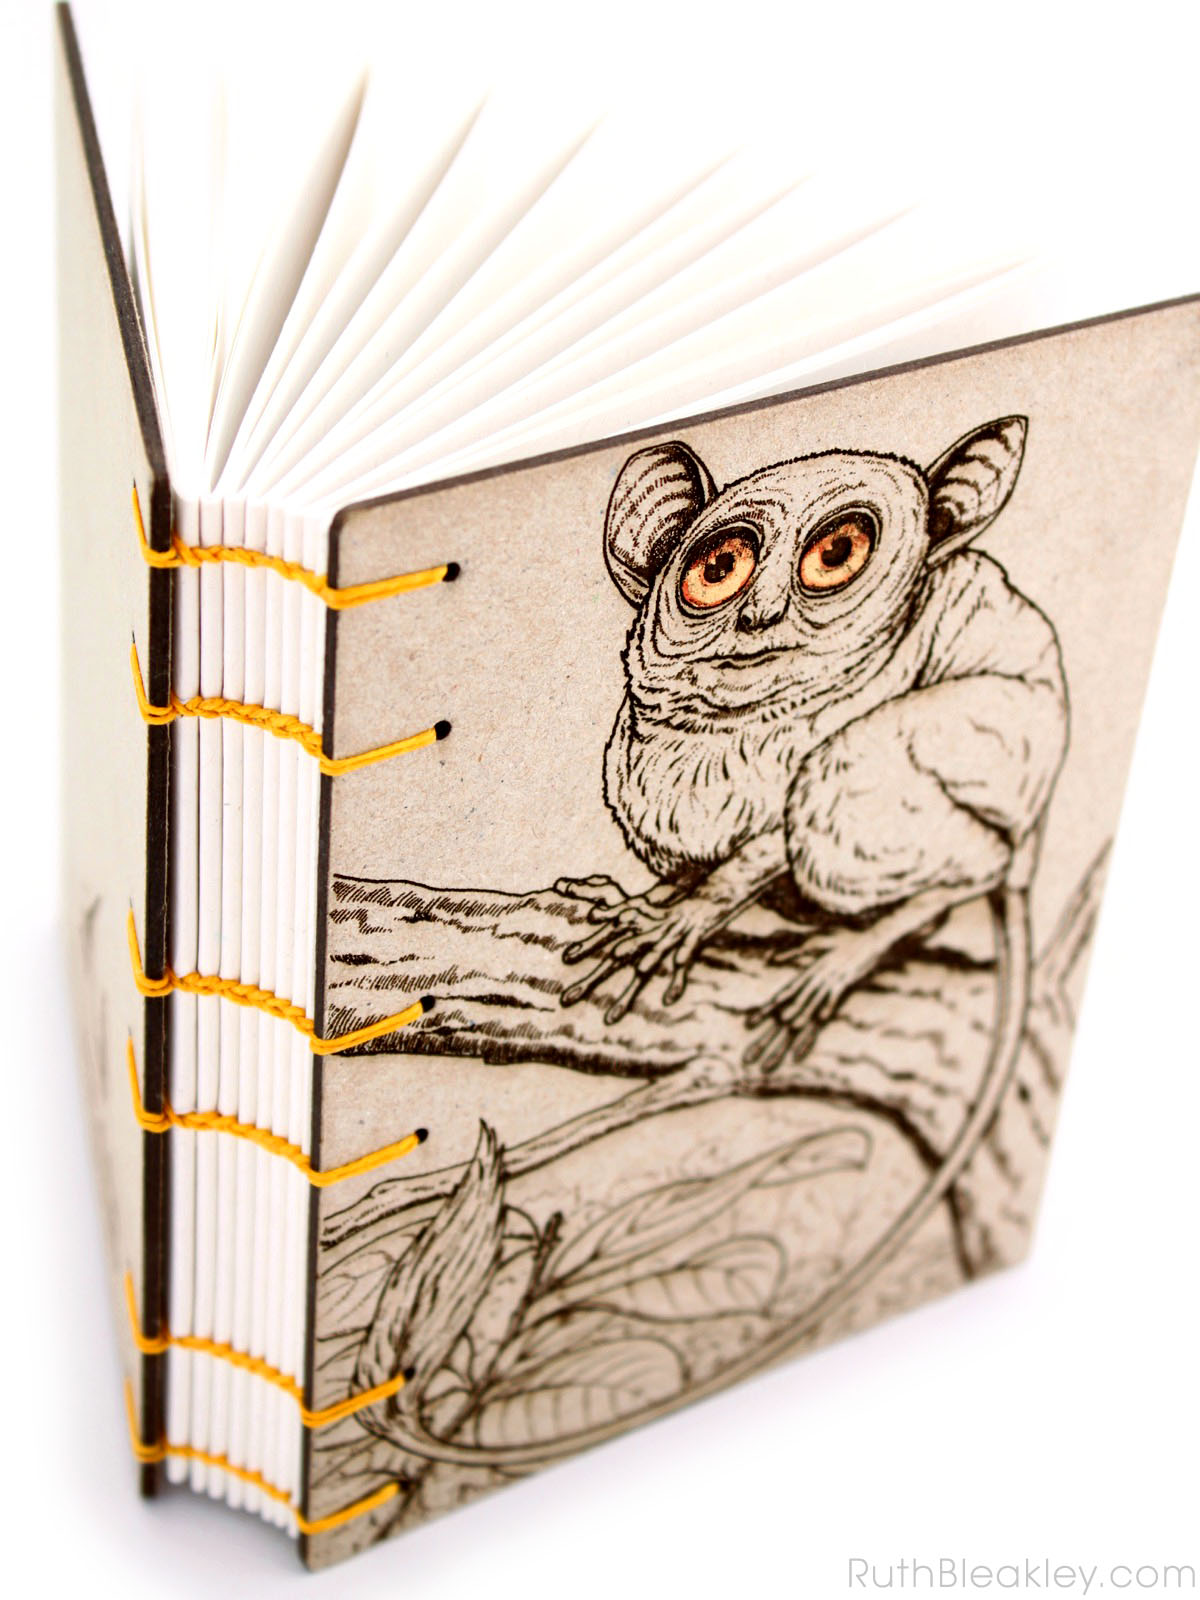 Koboldmaki laser engraved journal handmade by book artist Ruth Bleakley - unlined journal